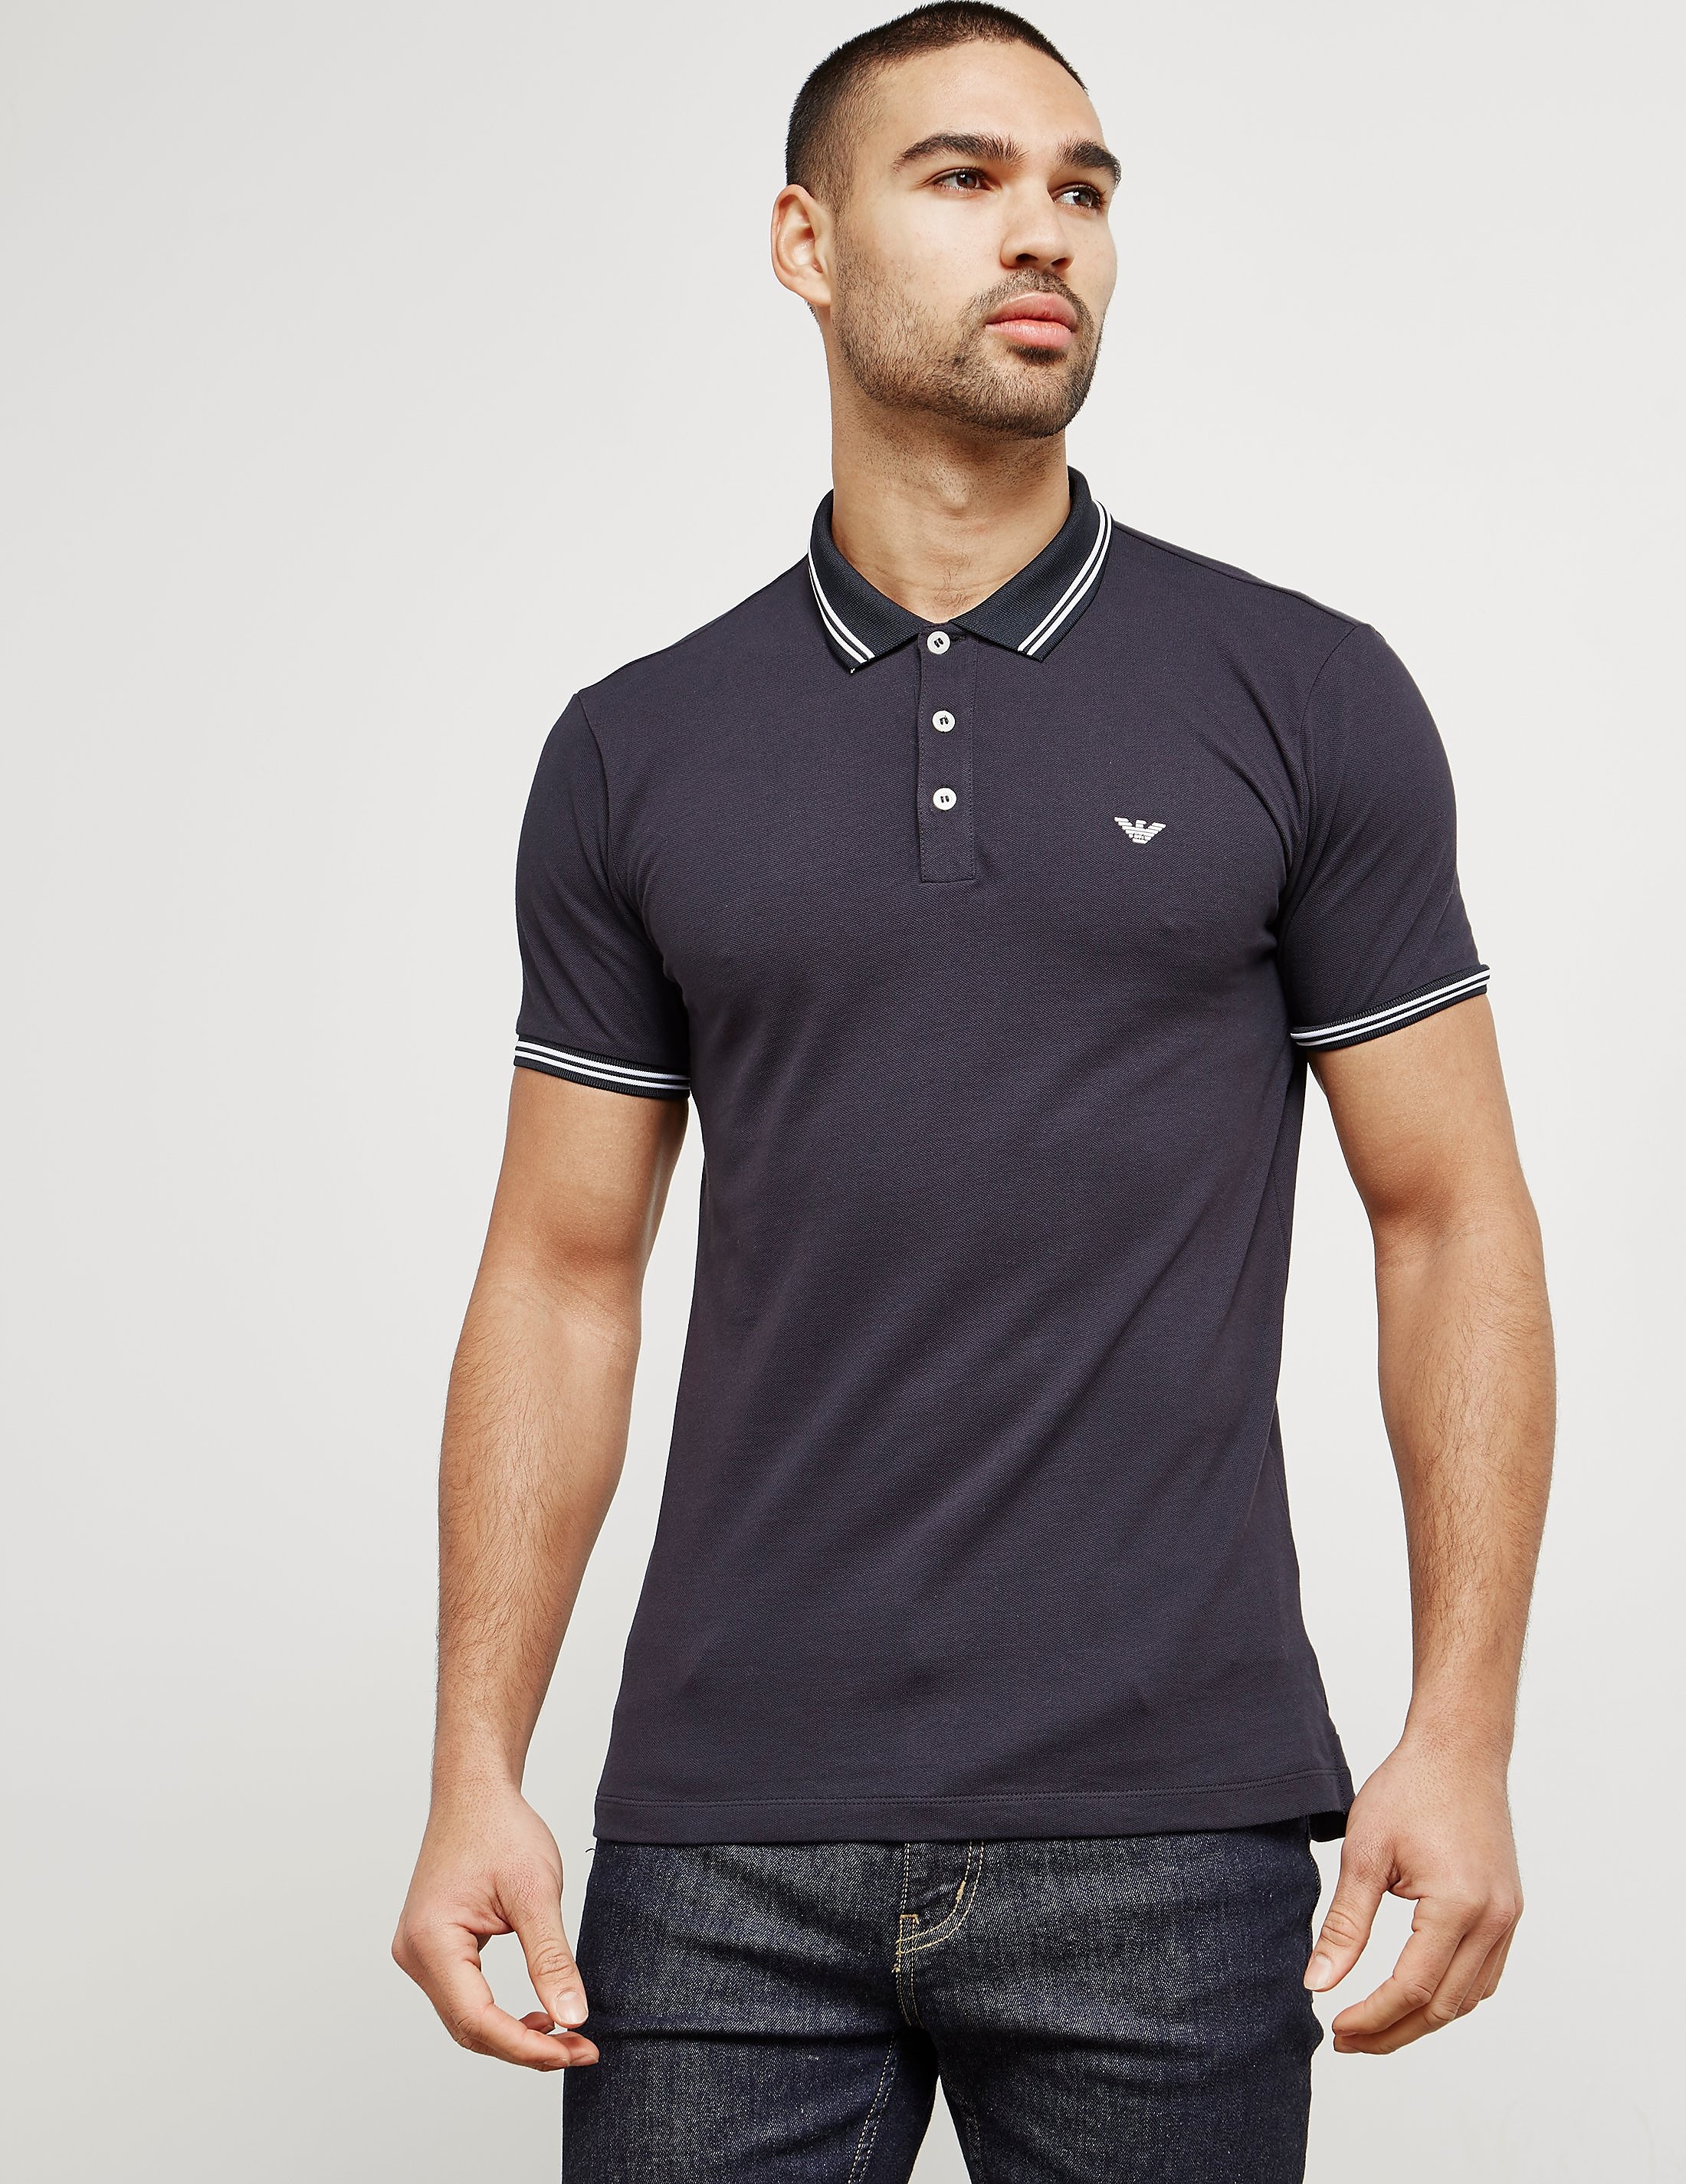 Emporio Armani Basic Tipped Short Sleeve Polo Shirt